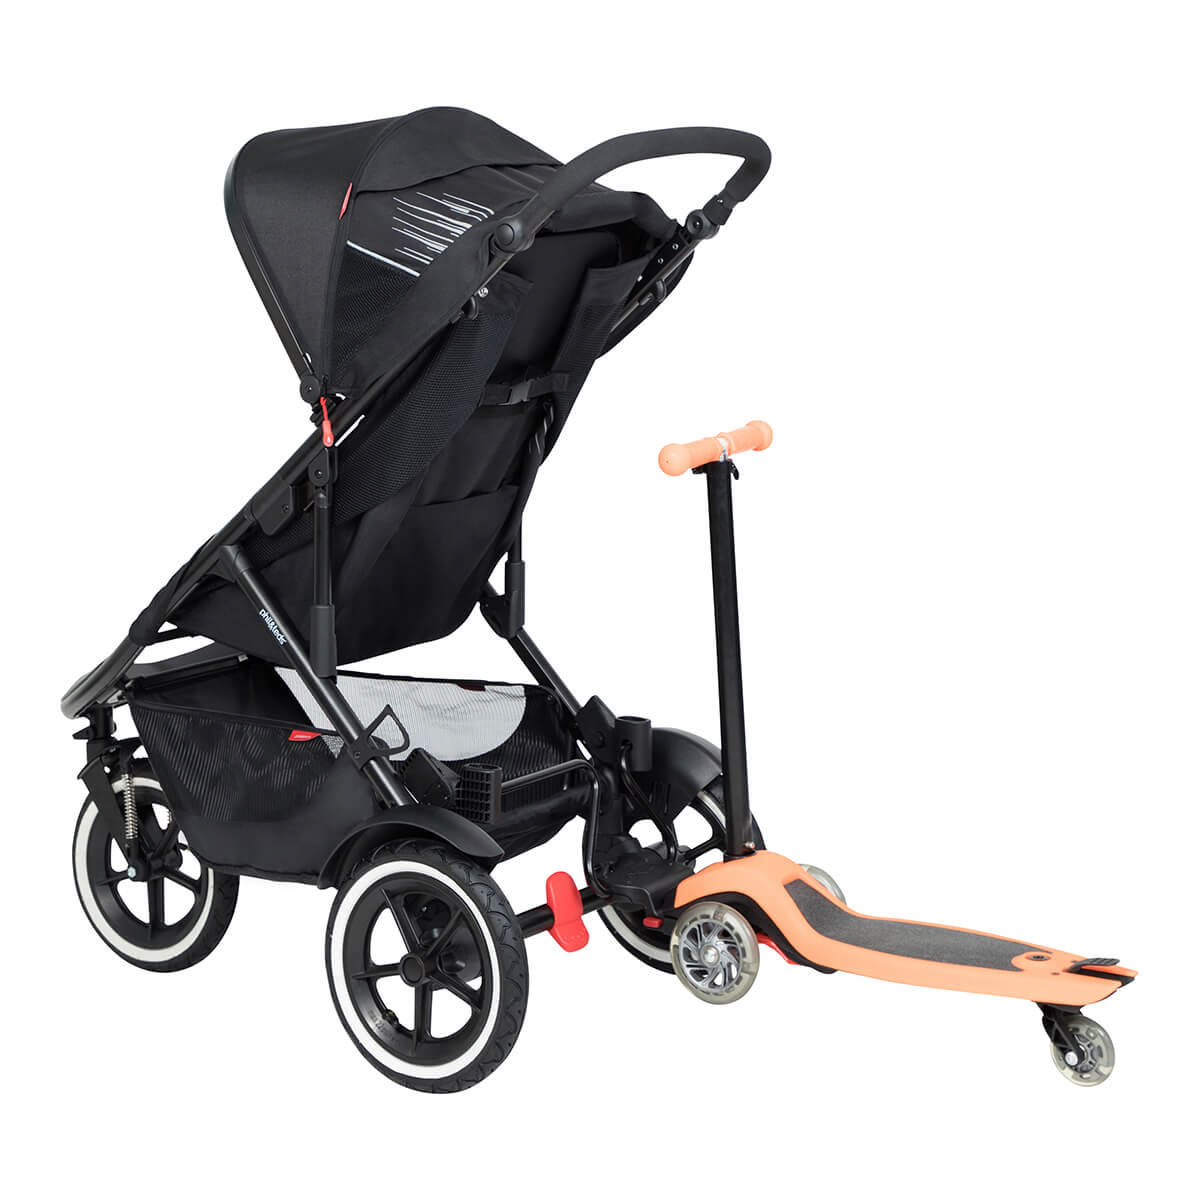 https://cdn.accentuate.io/4394876928105/19119322824809/philteds-sport-buggy-with-freerider-stroller-board-in-rear-v1626484878338.jpg?1200x1200